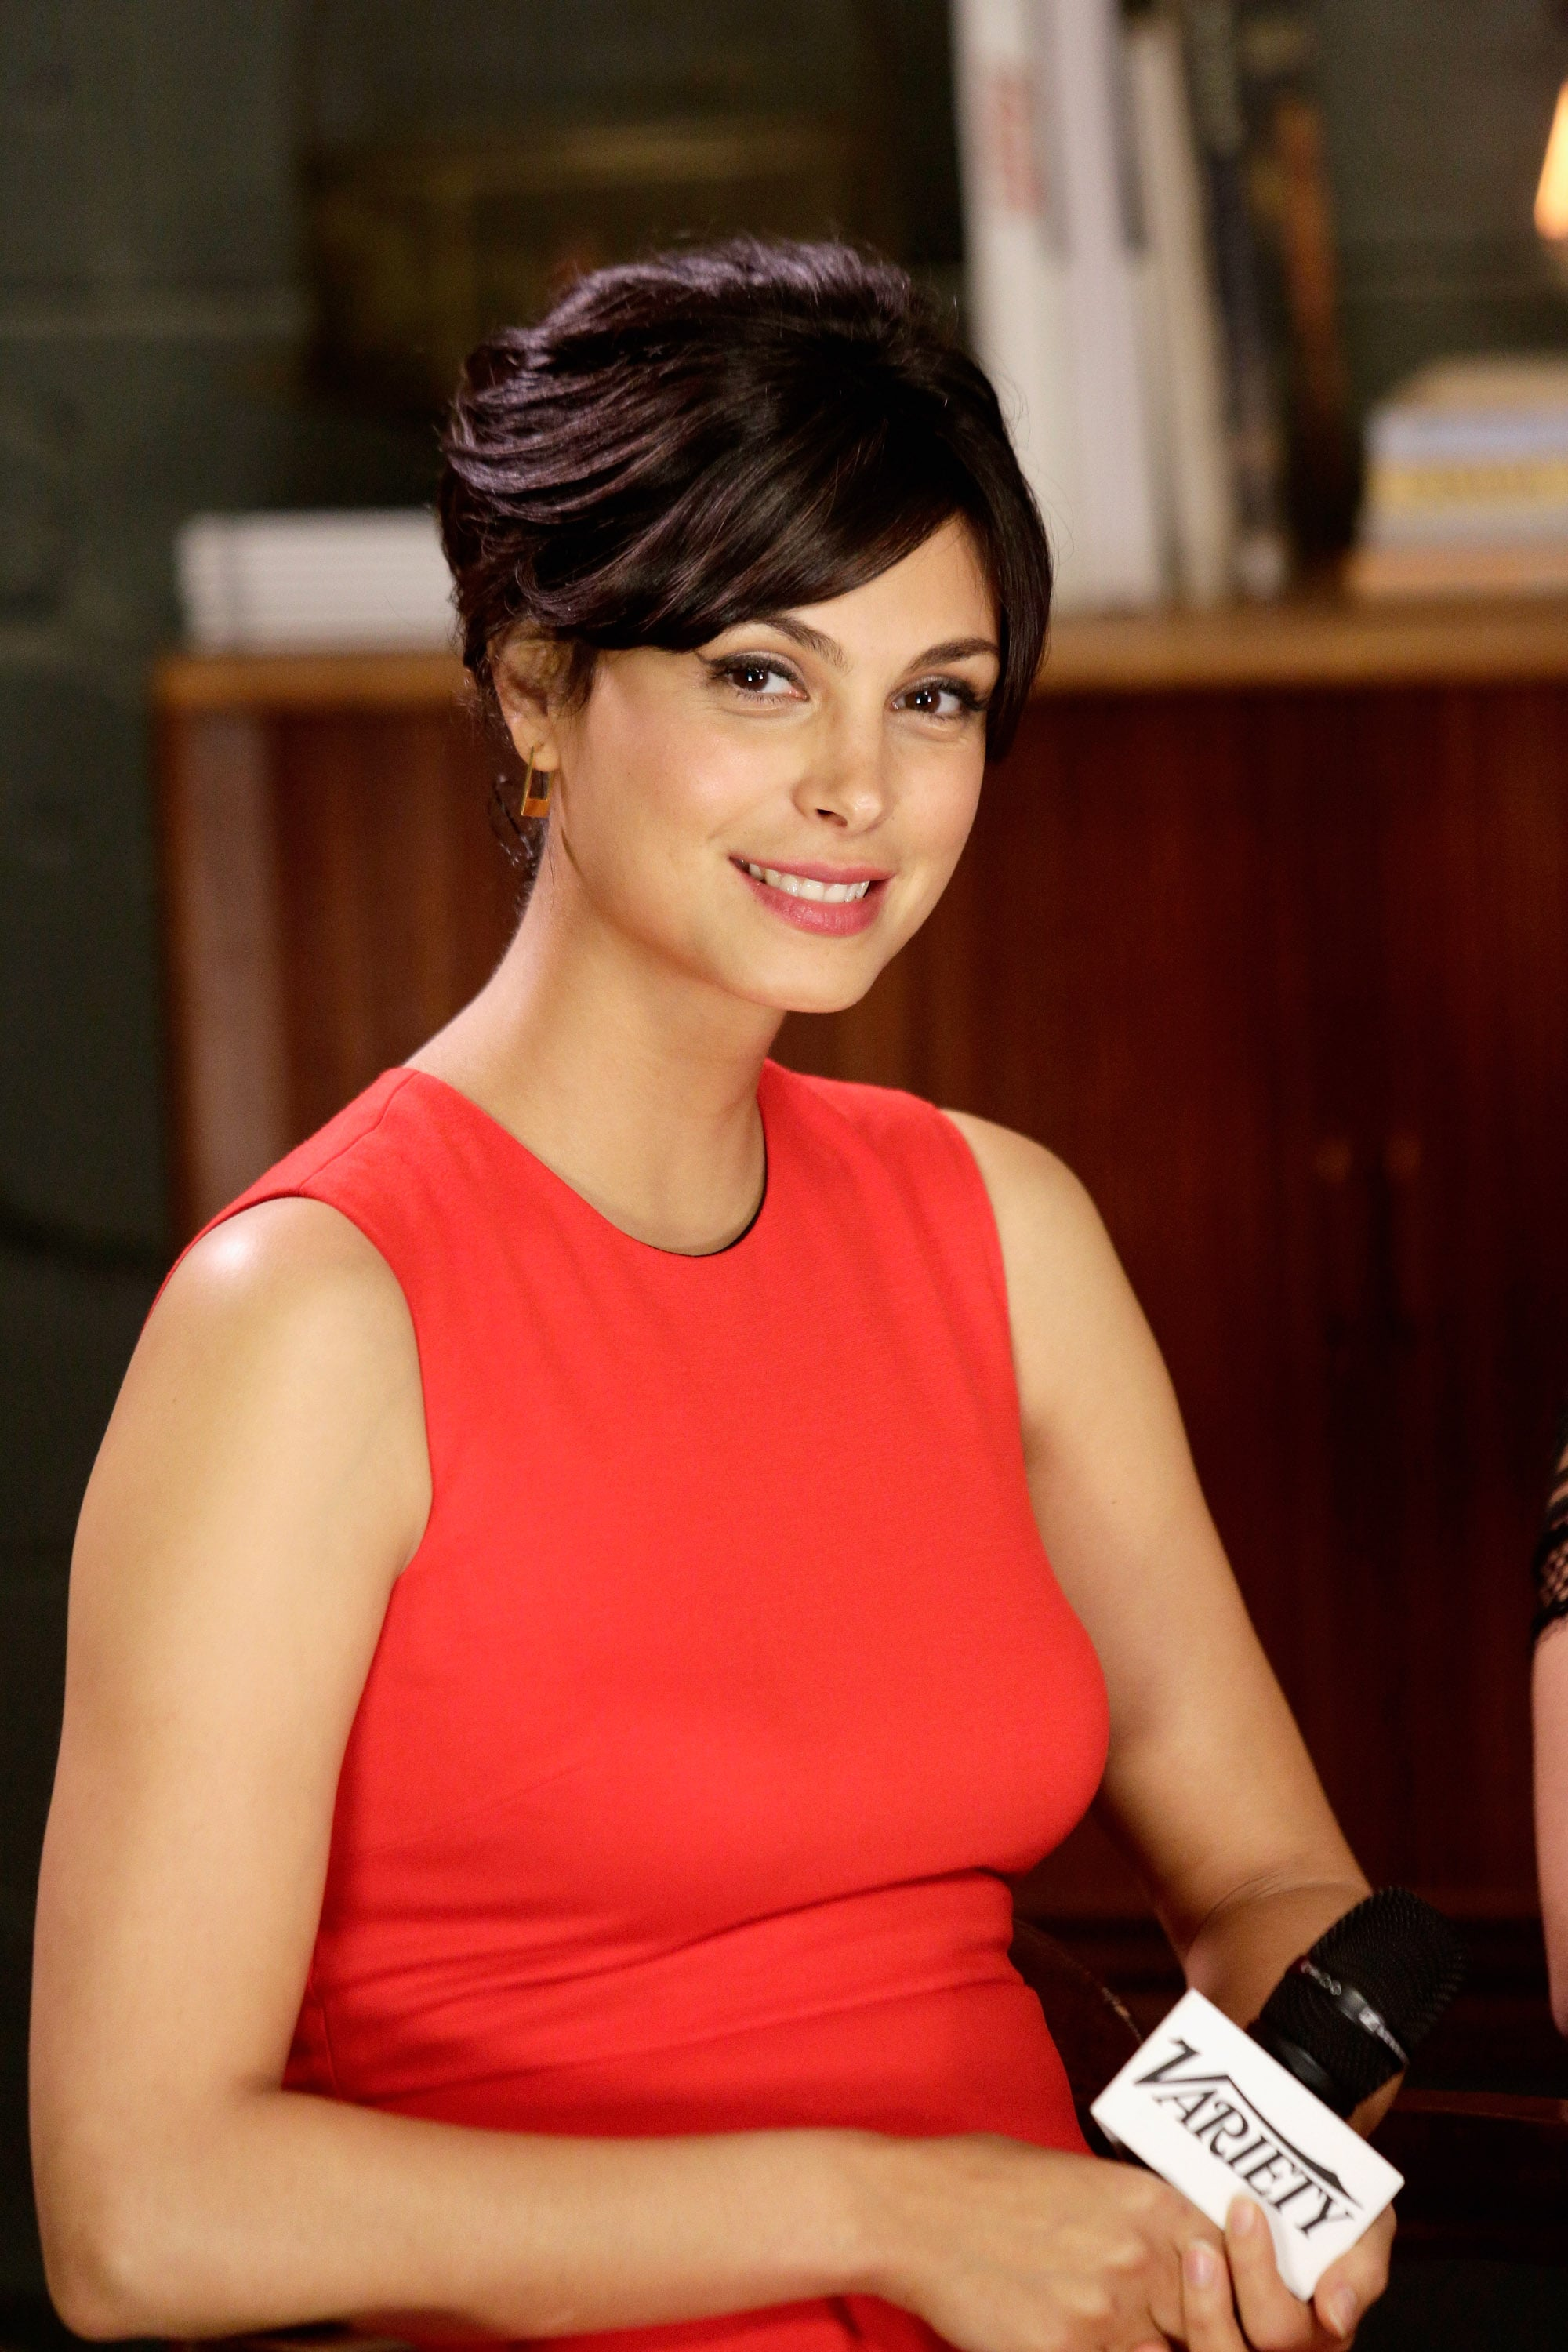 Homeland's Morena Baccarin looked classically beautiful with a swipe of pink on her lips and a pretty updo.